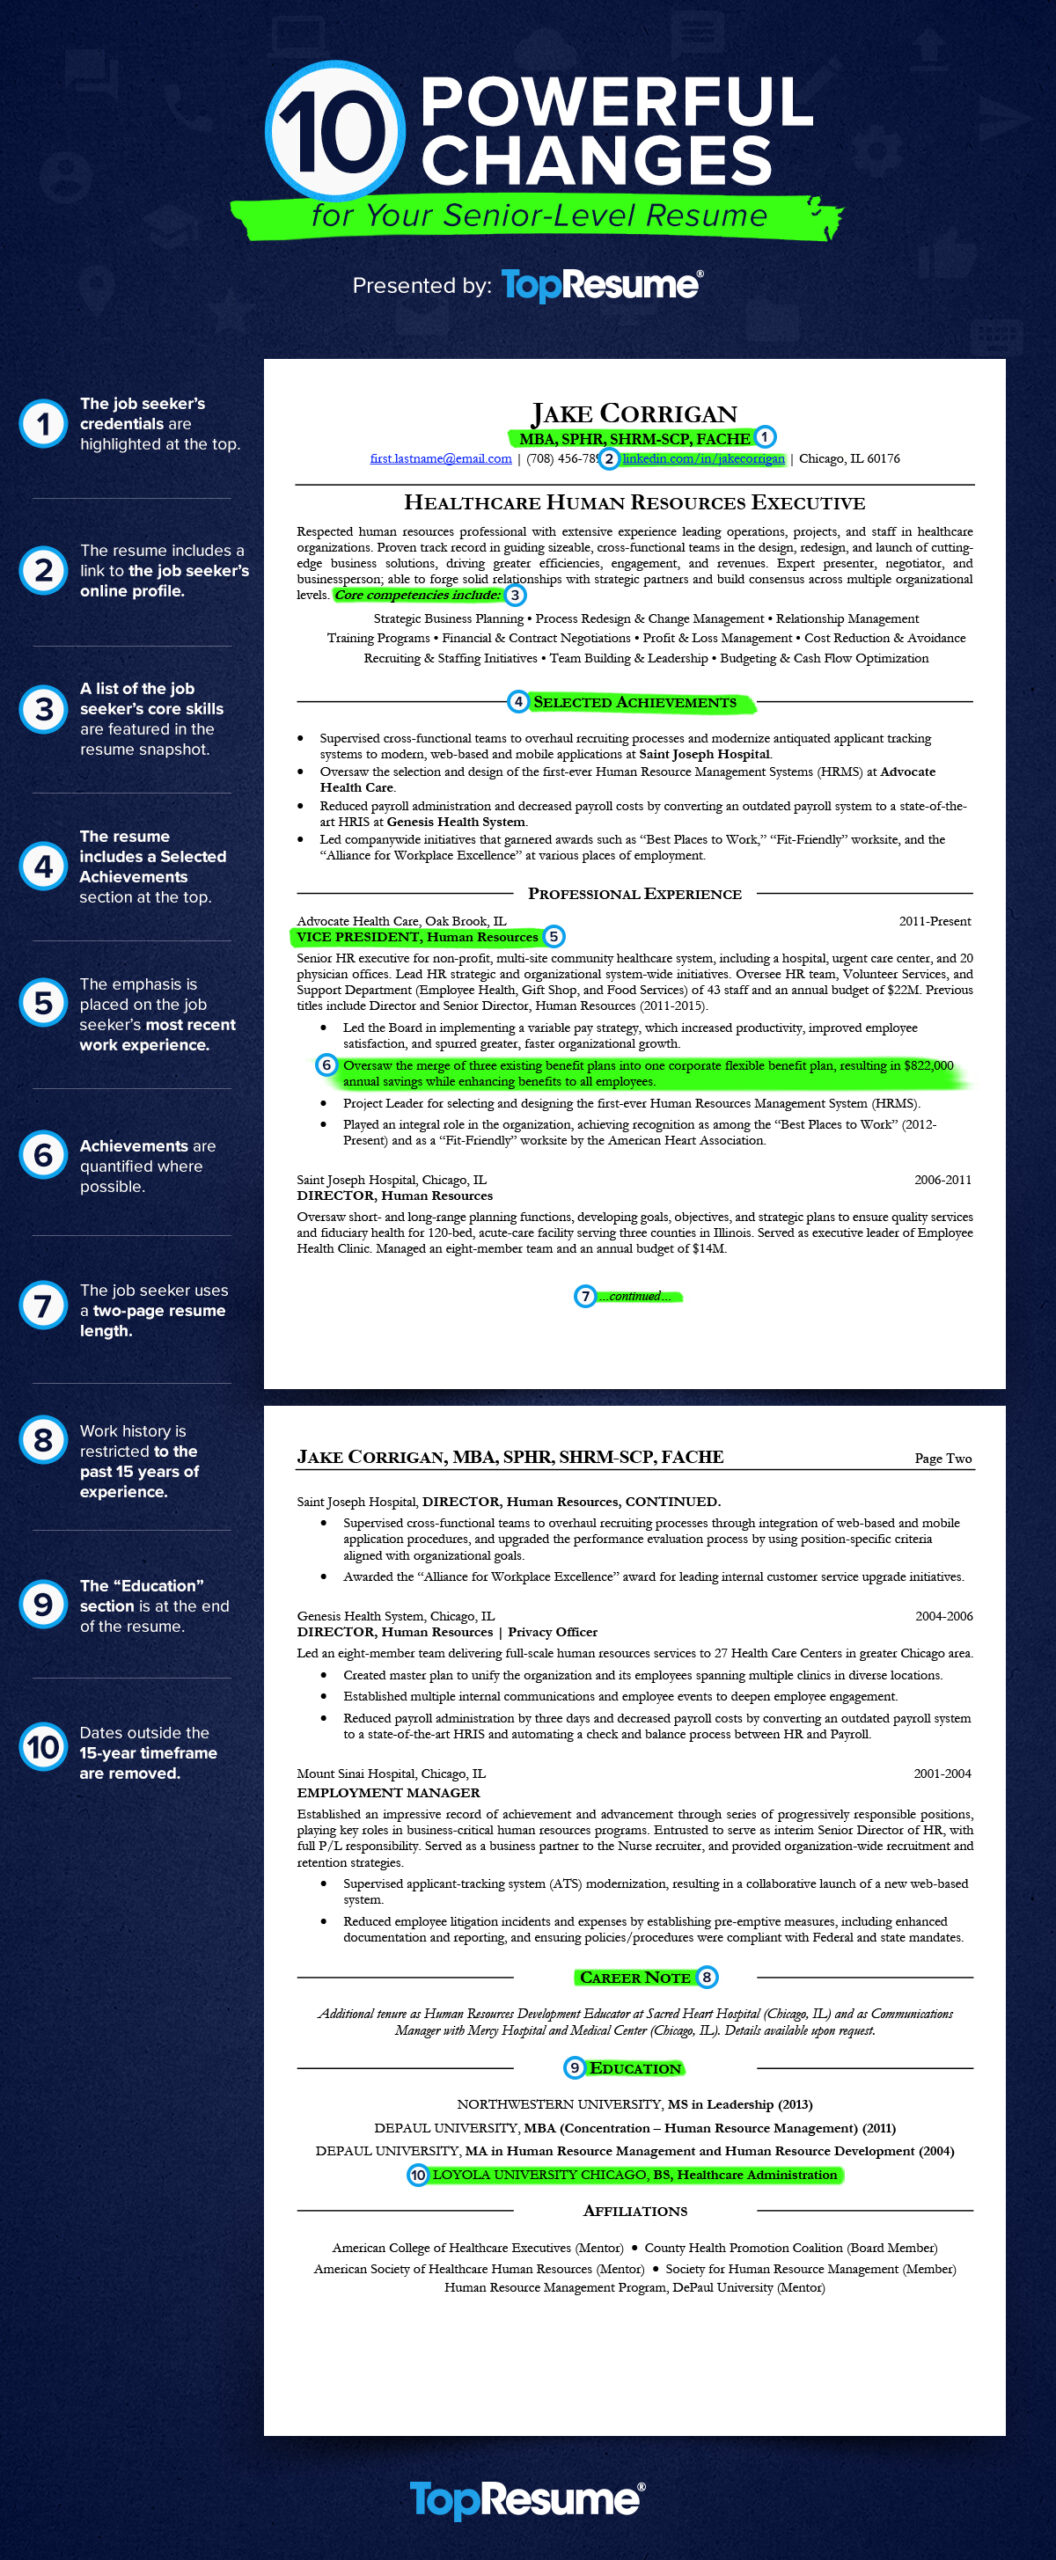 powerful changes for your executive level resume topresume template ig v1 professional Resume Executive Resume Template 2020